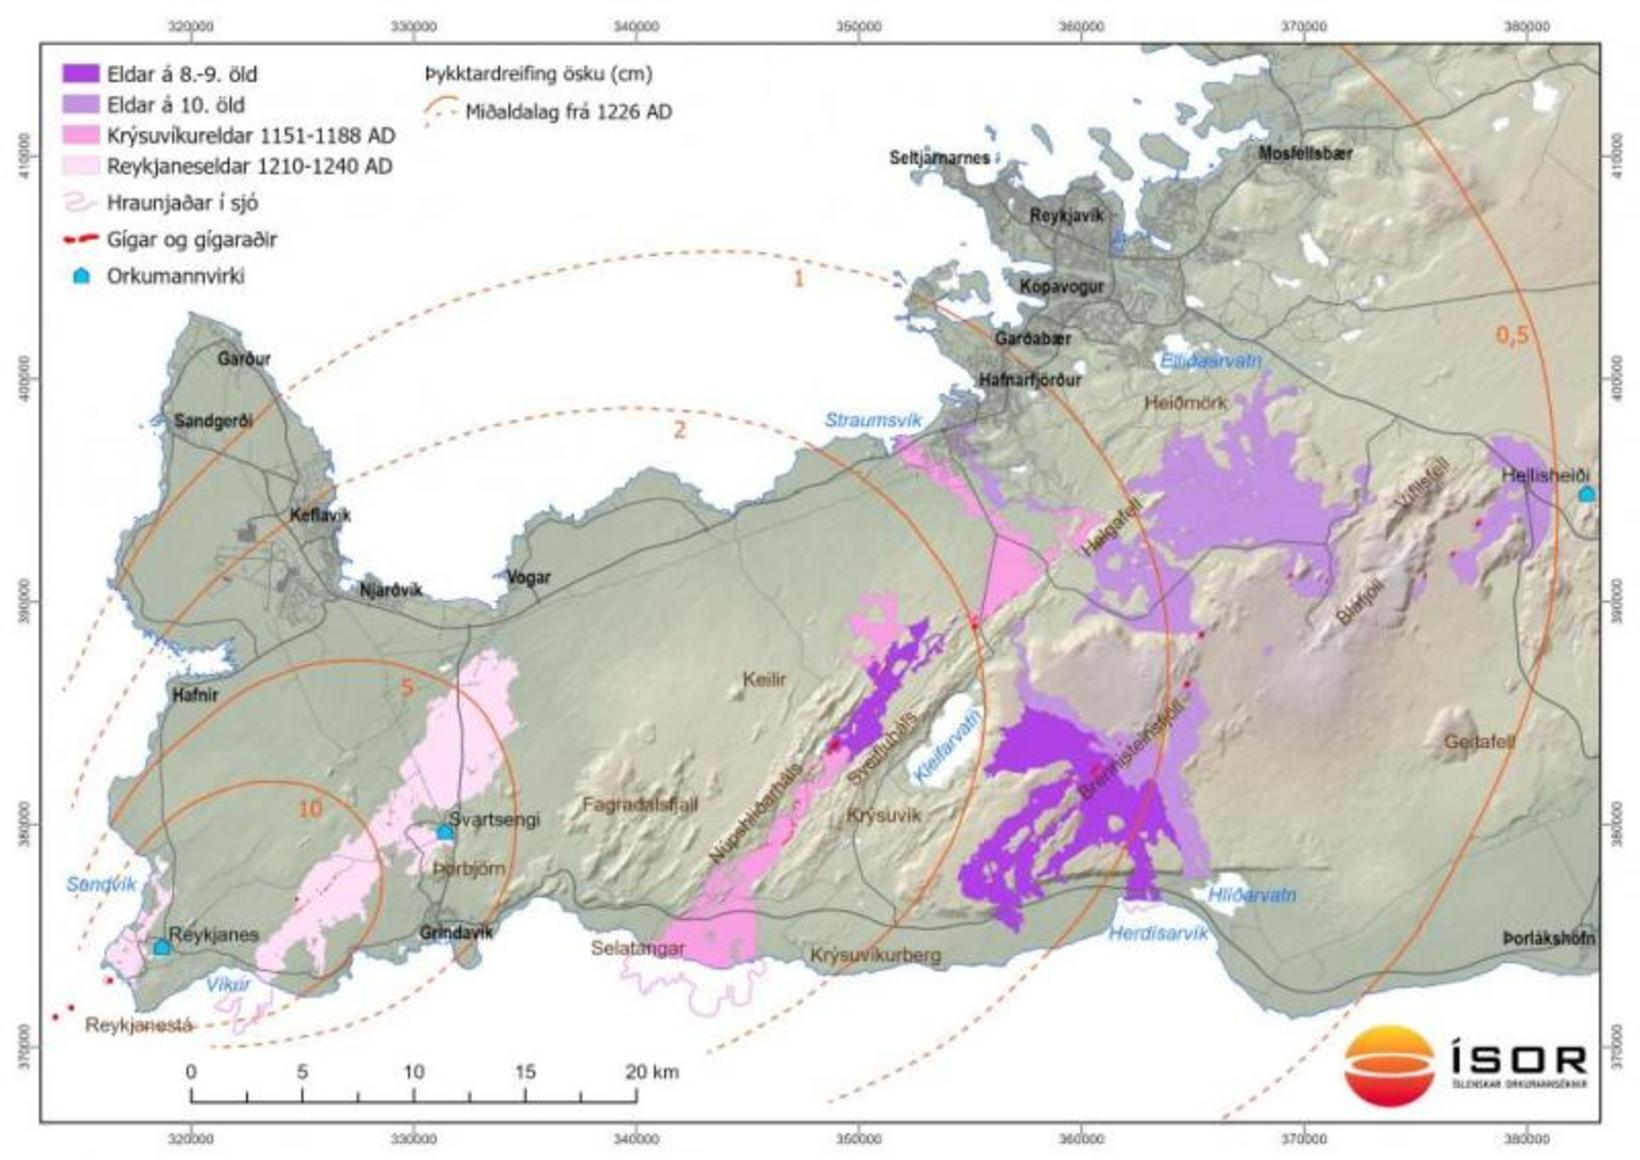 The map shows lava fields from the last volcanic period …